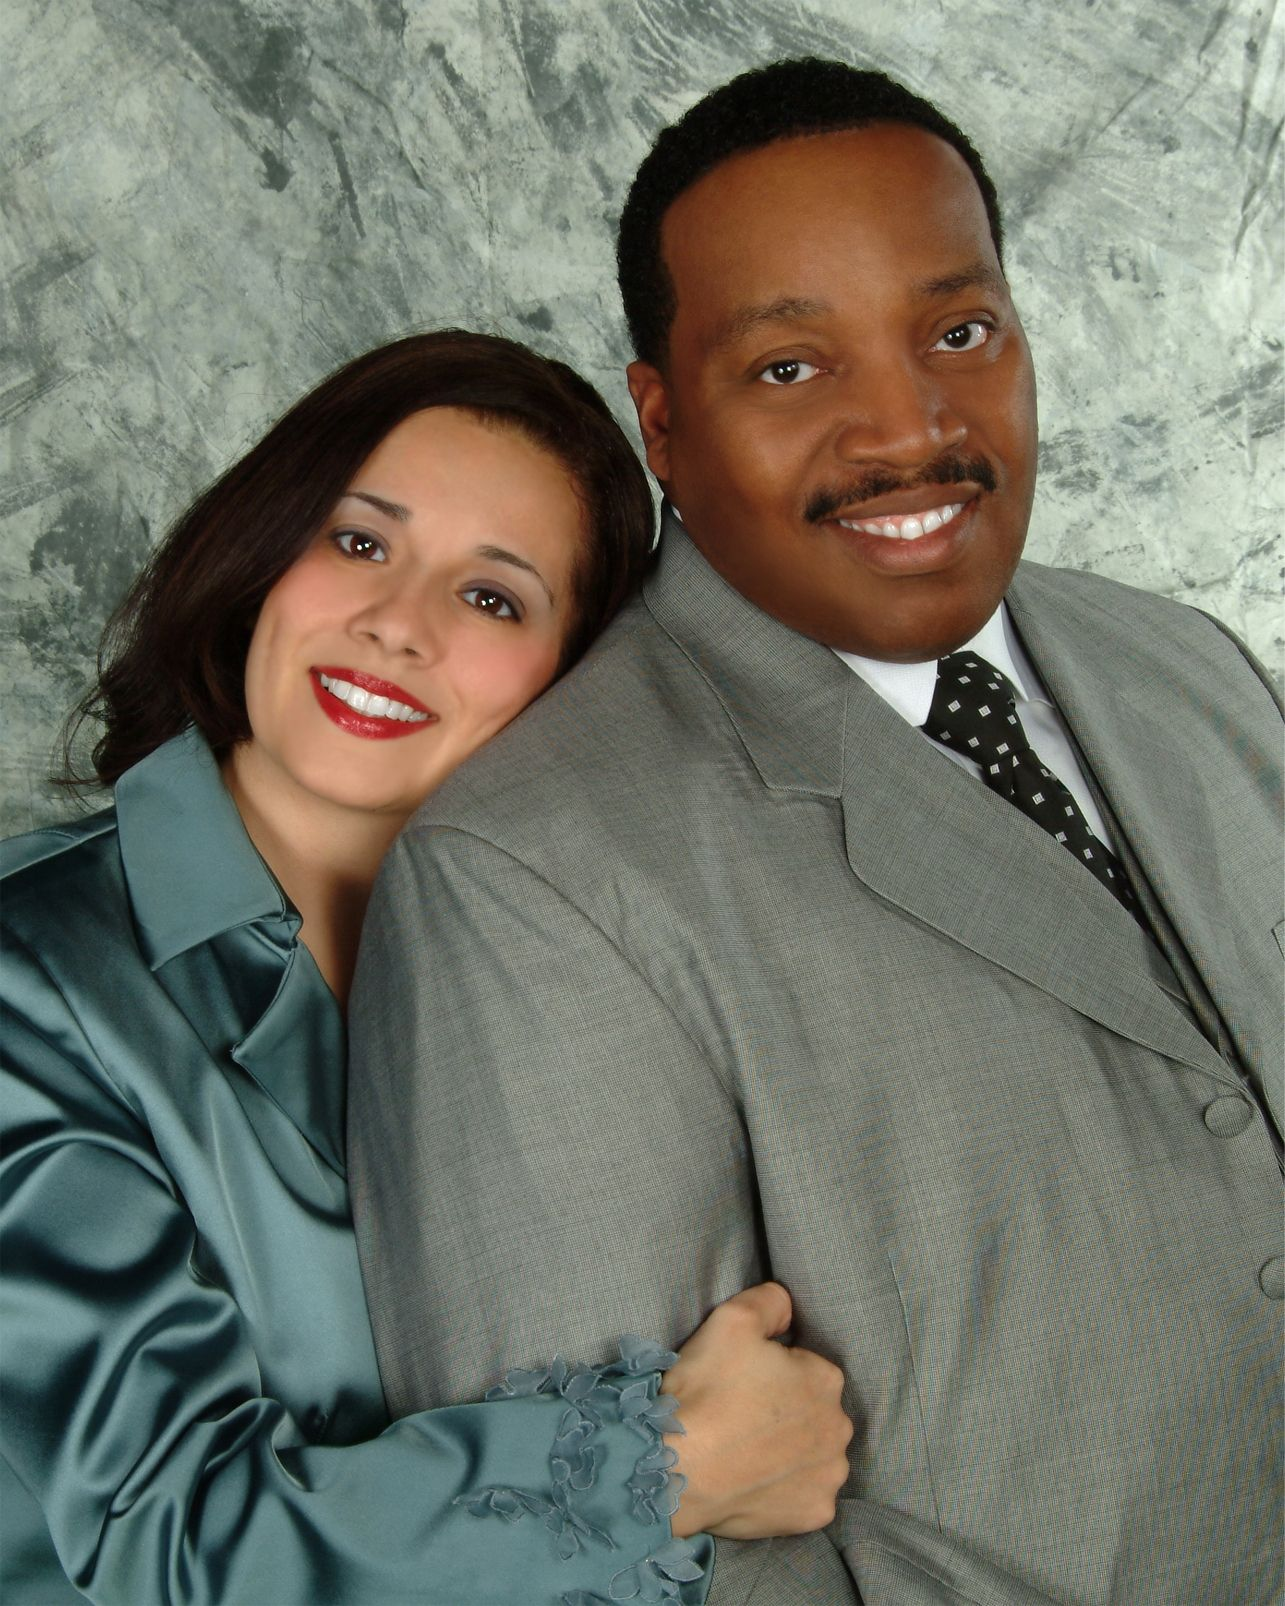 duncans black singles Our black dating site is the #1 trusted dating source for singles across the united states register for free to start seeing your matches today.